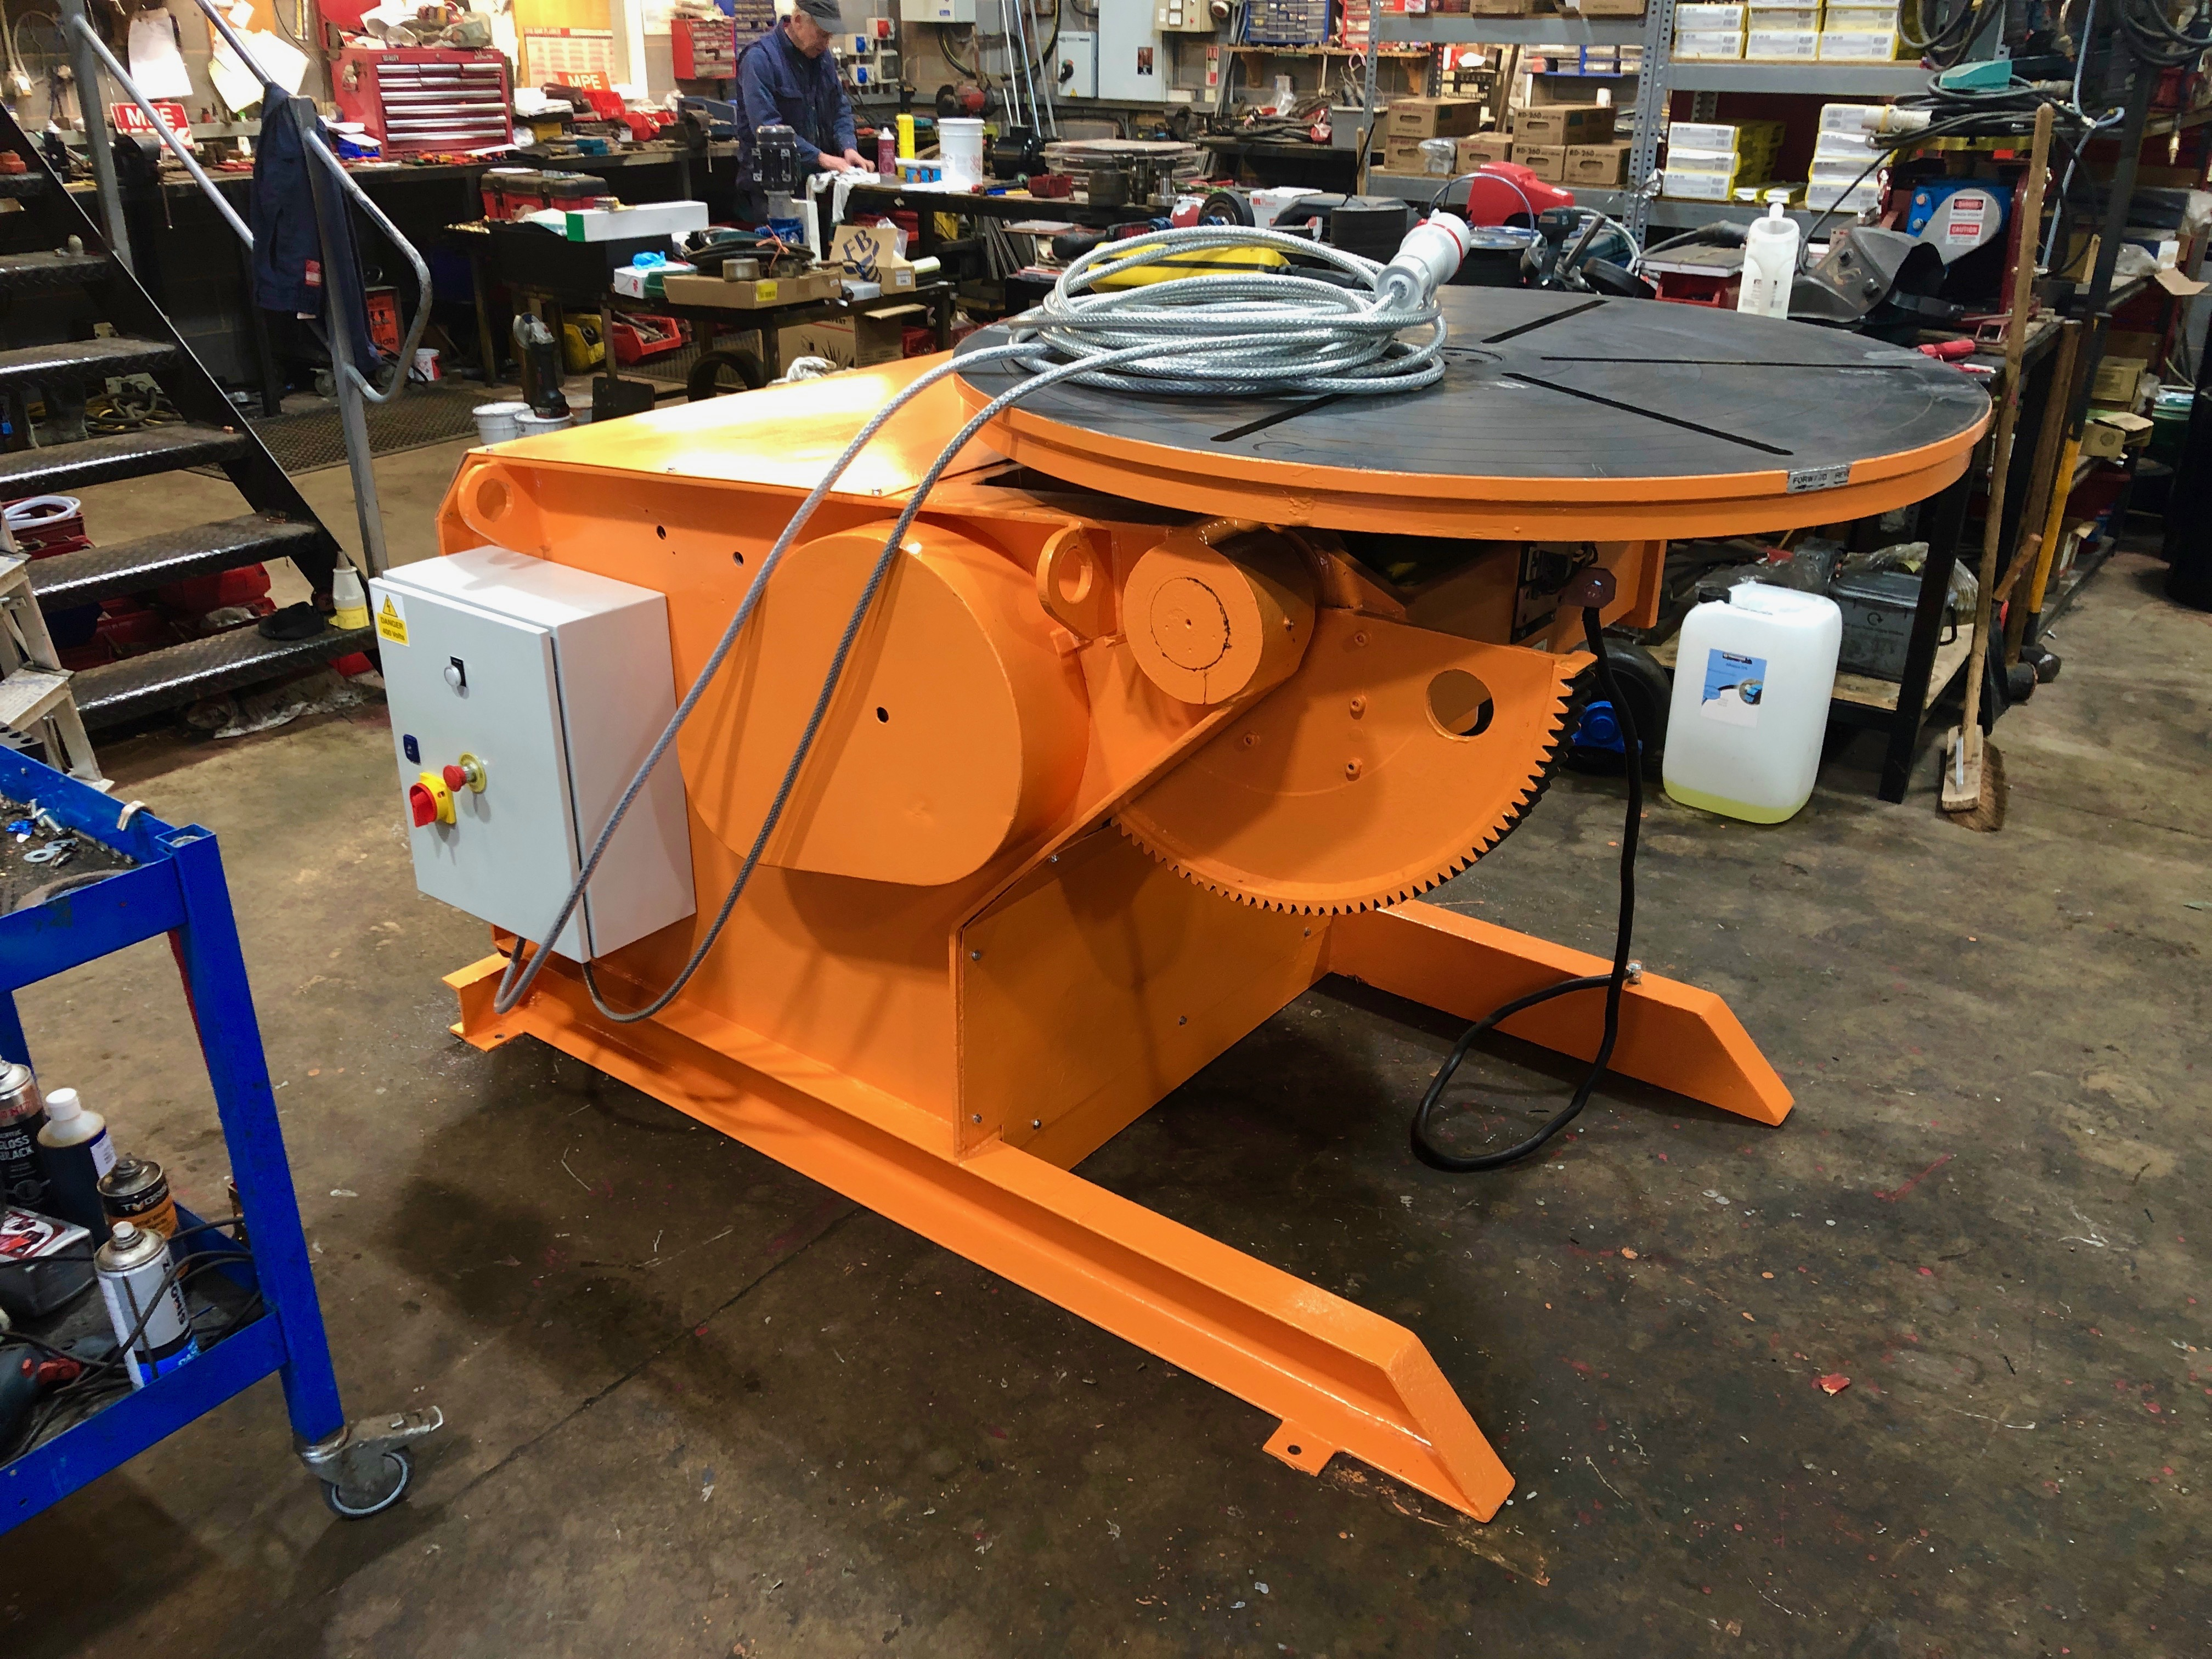 BODE 3 tonne SWL welding positioner, stripped, refurbished, and painted orange